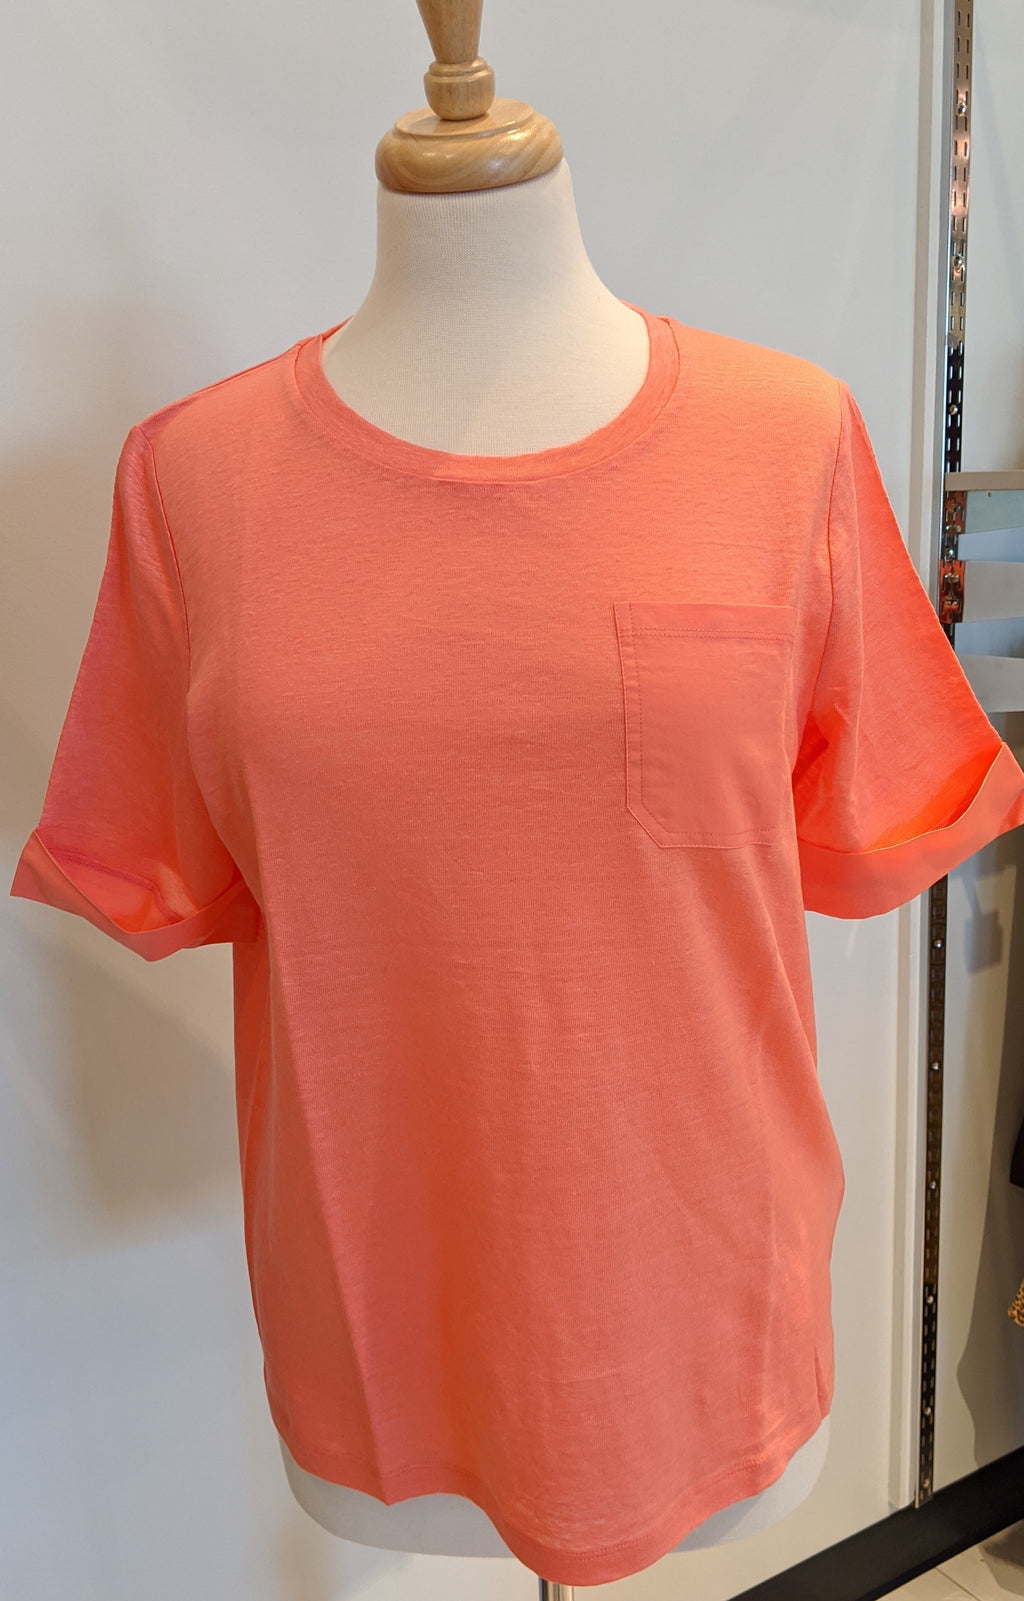 Linen Top W/Pocket - Sonia's Runway